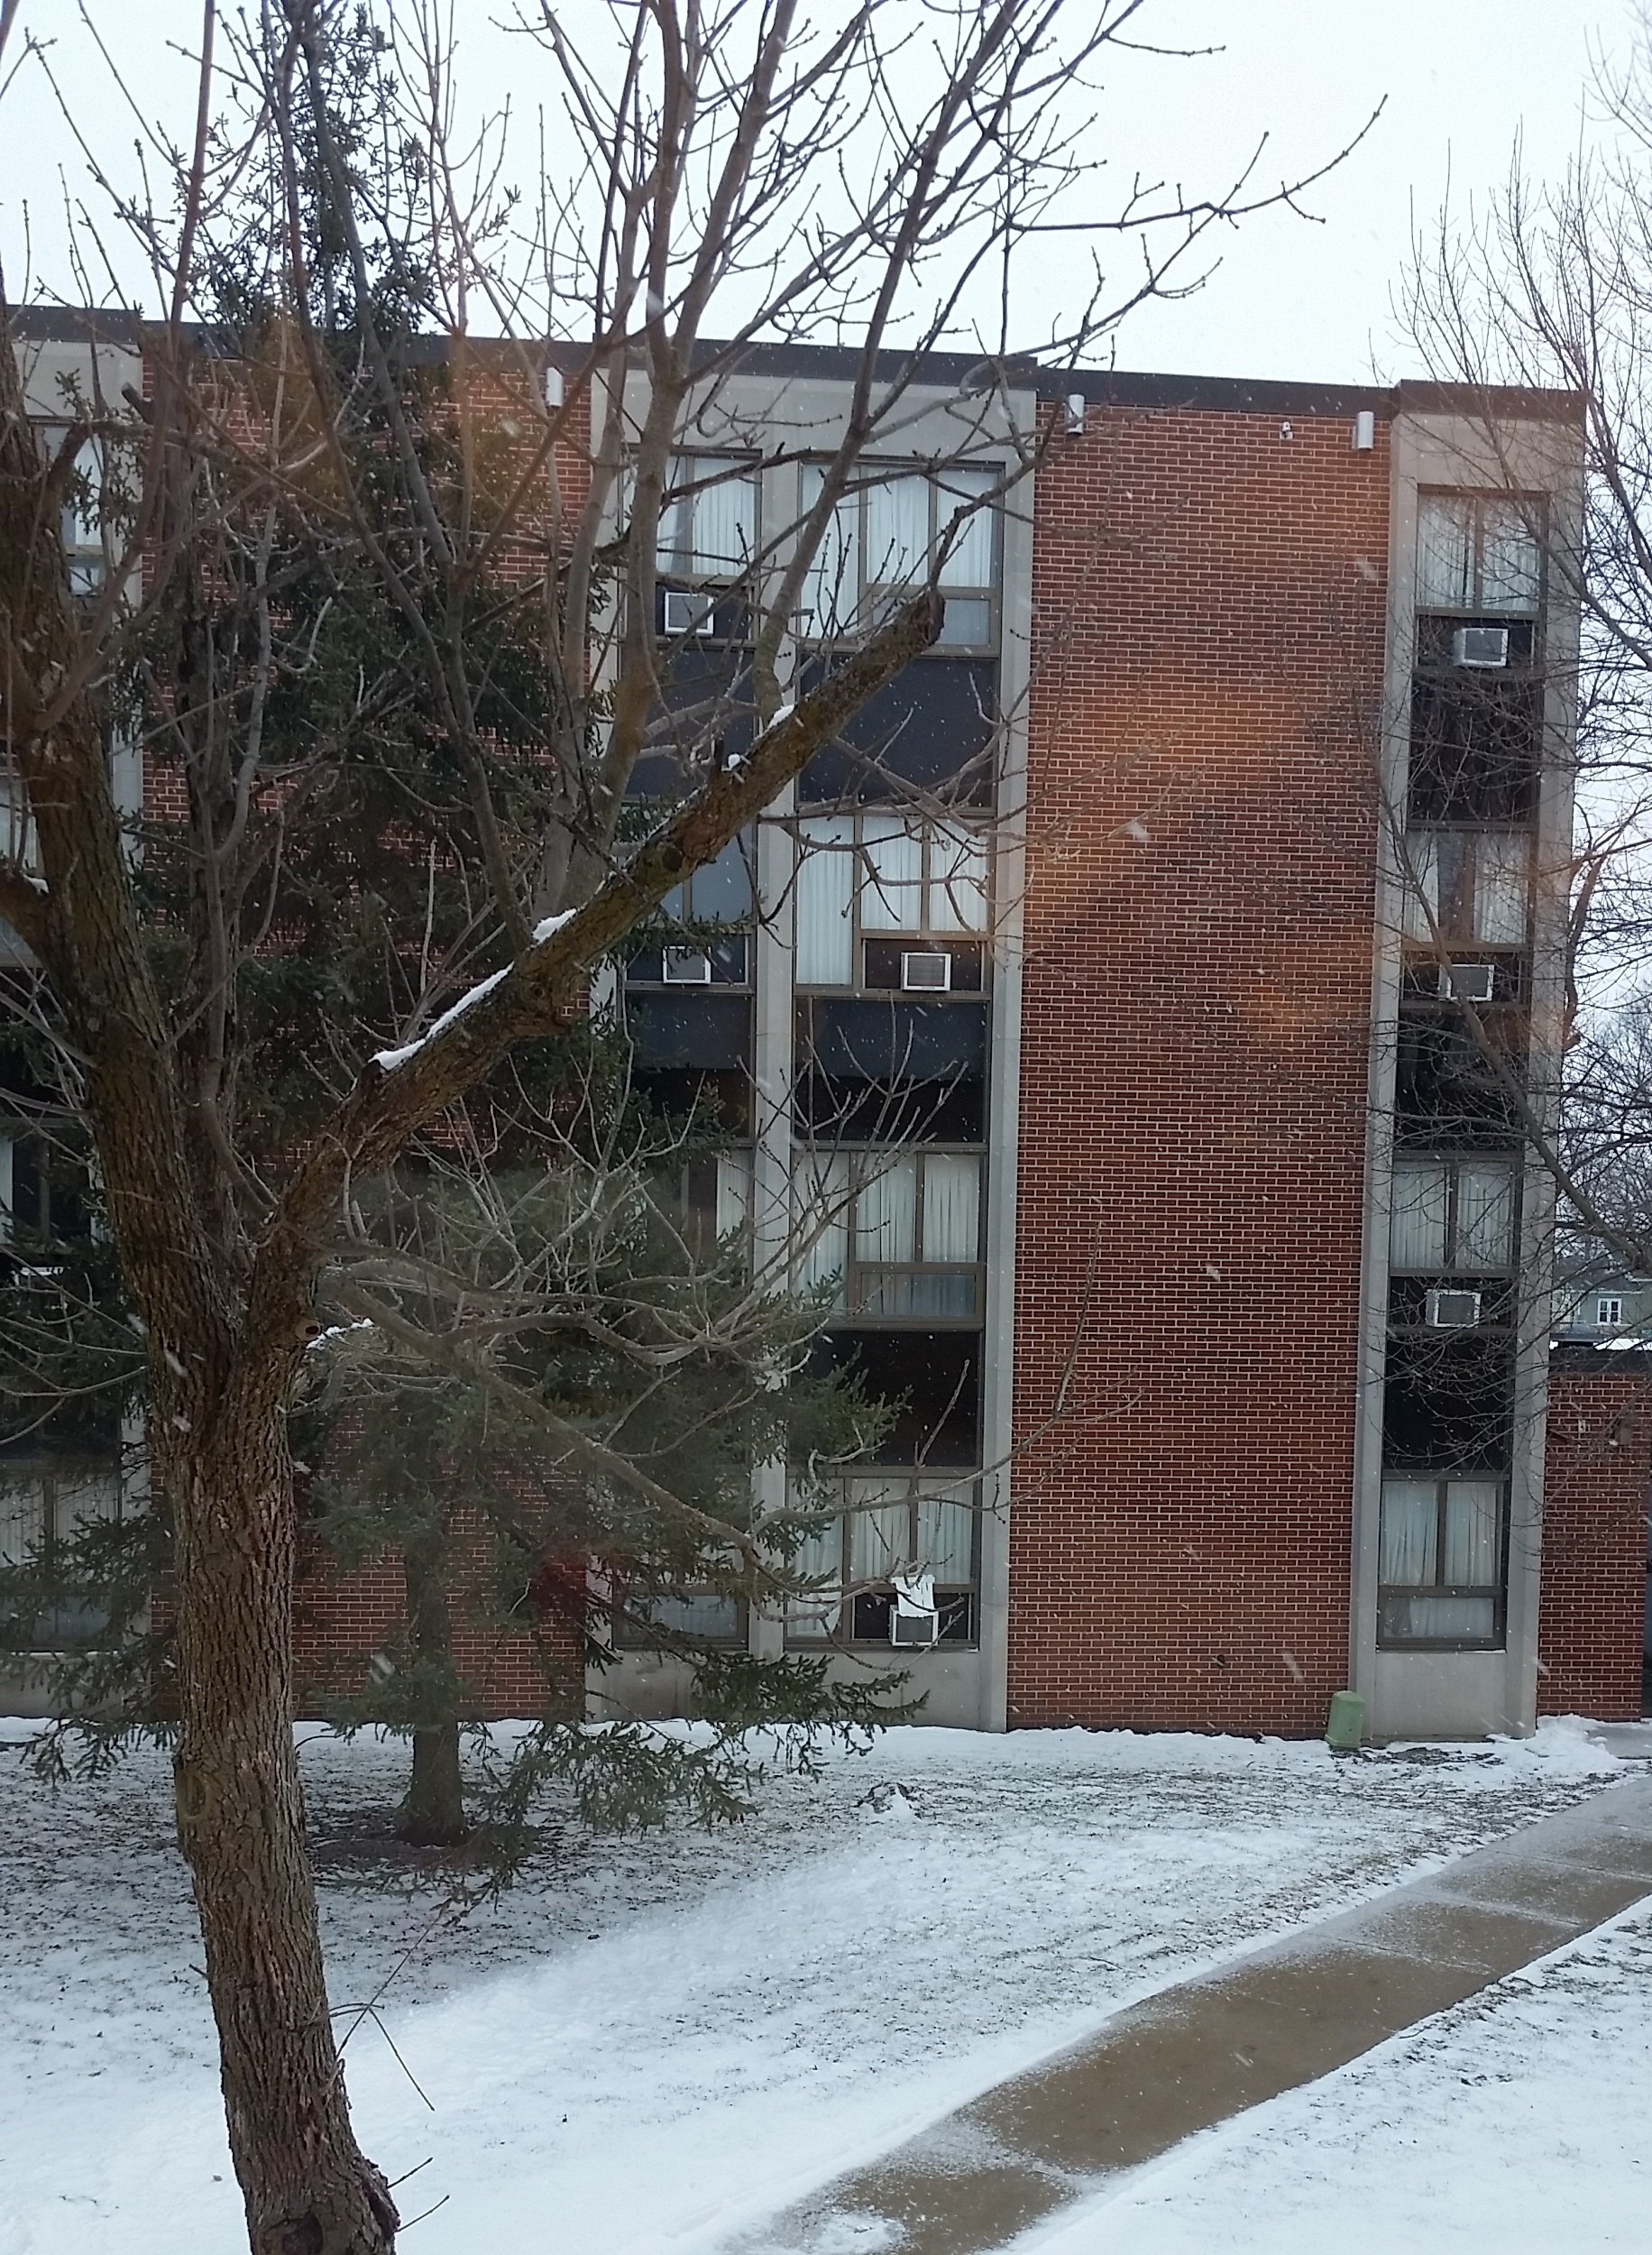 school dormitory in the snow